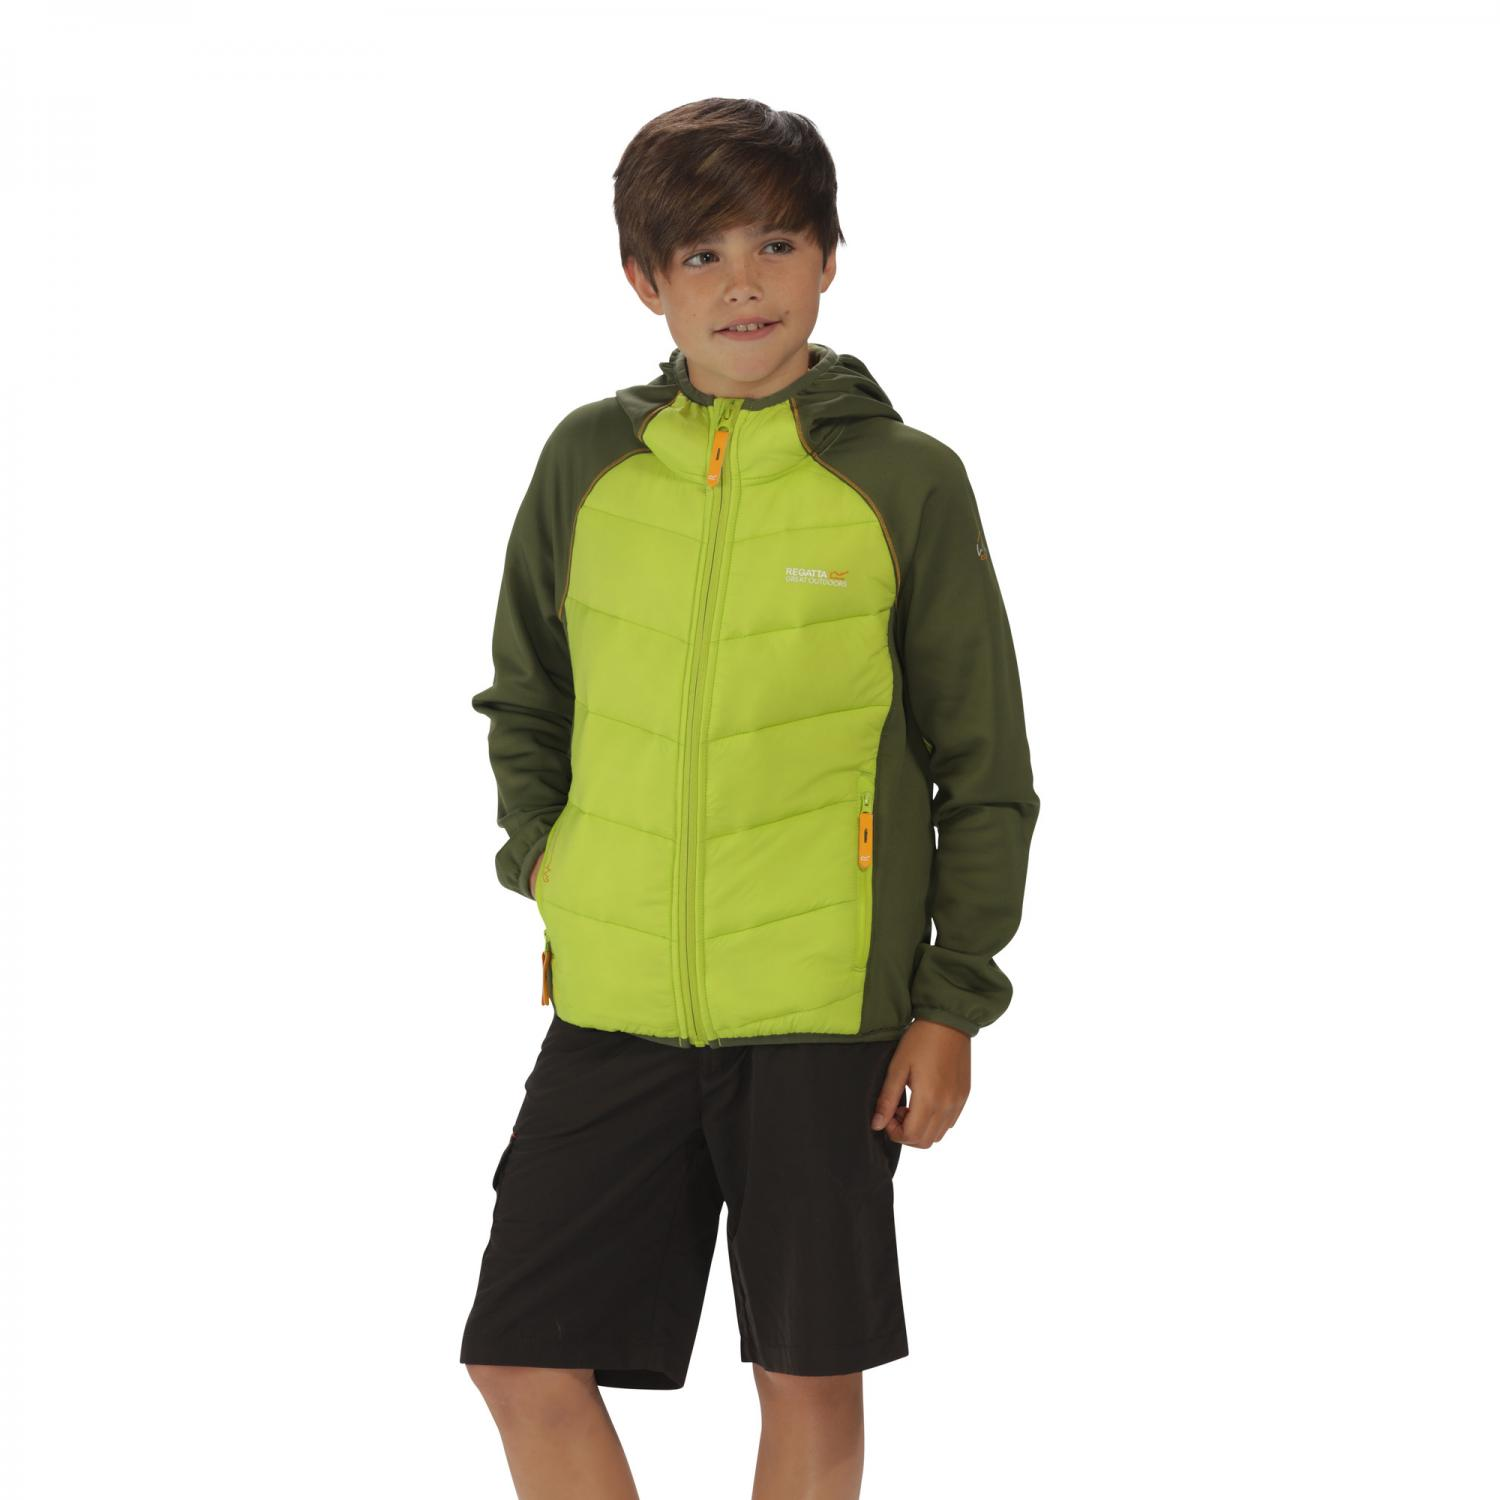 Kielder Hybrid Jacket Lime Green